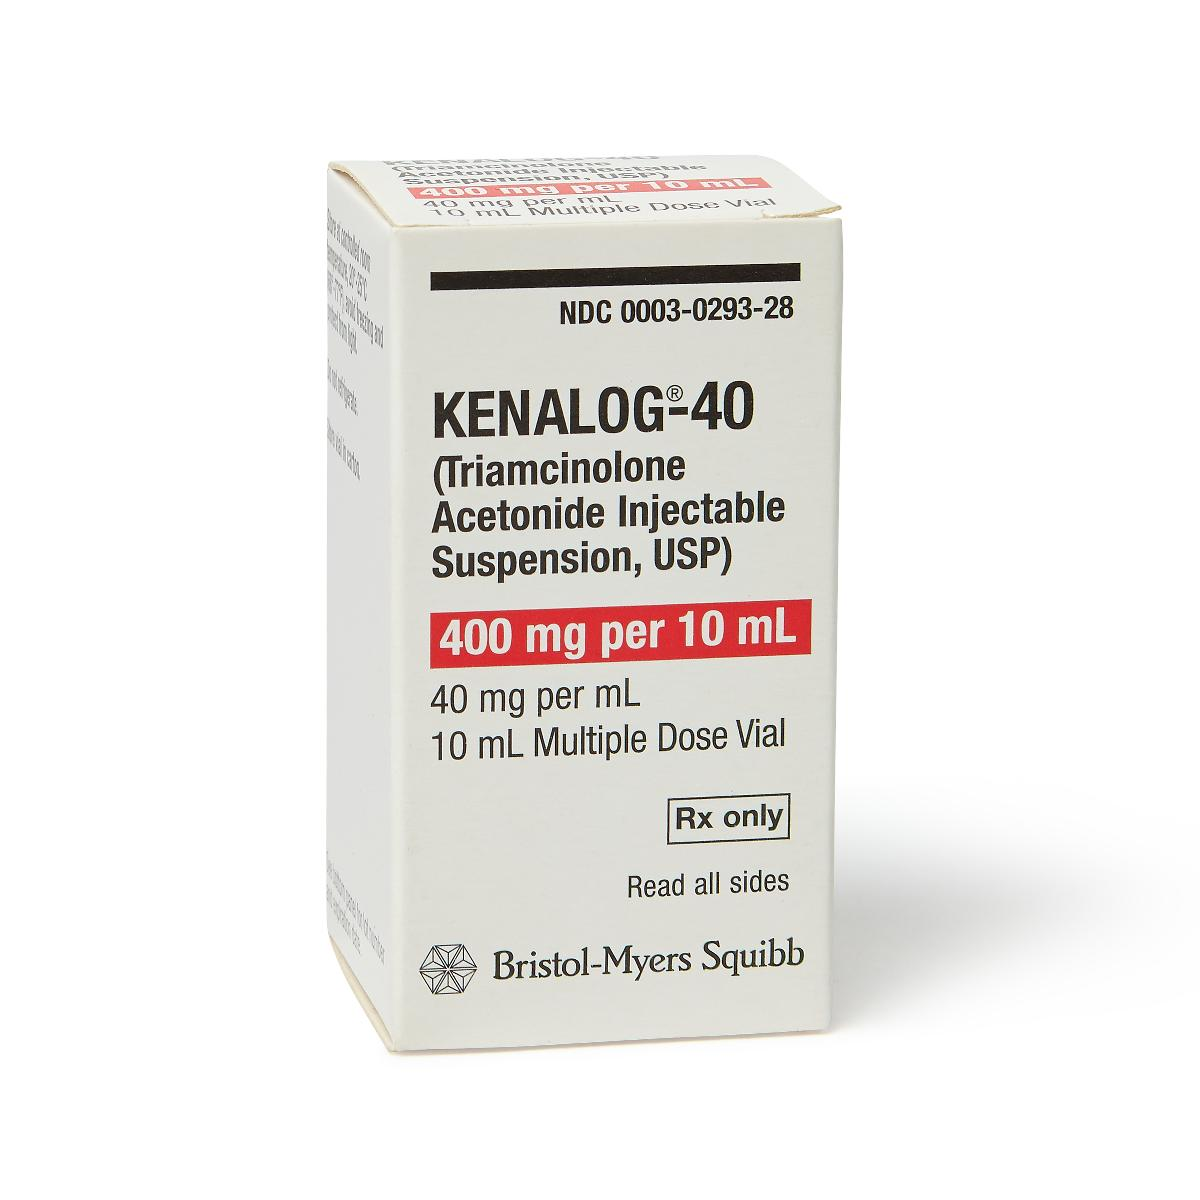 Kenalog®-40 10mL Triamcinolone Acetonide 40 mg / mL Injection Multiple Dose Vial